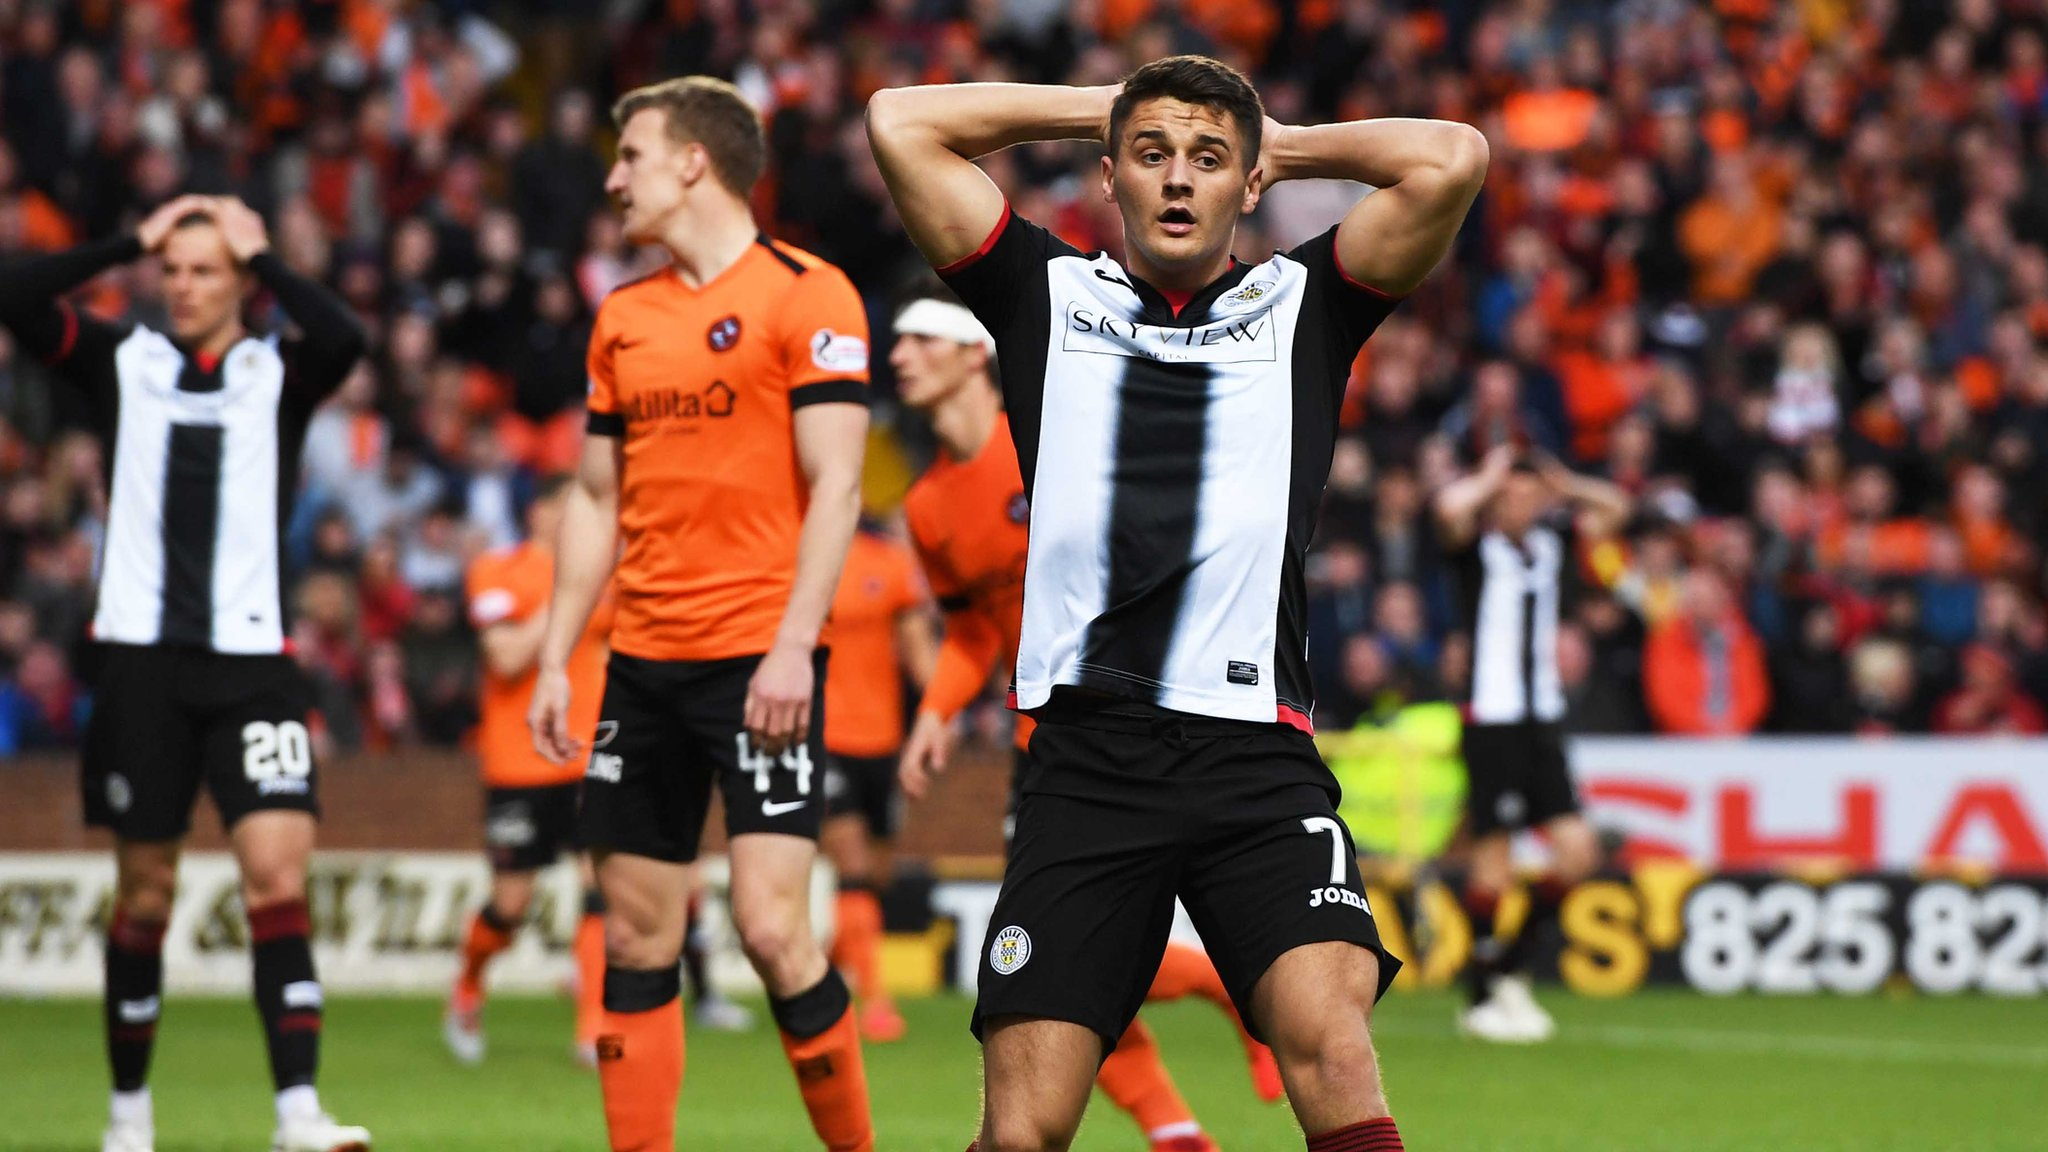 Dundee United 0-0 St Mirren: play-off final finely poised after stalemate